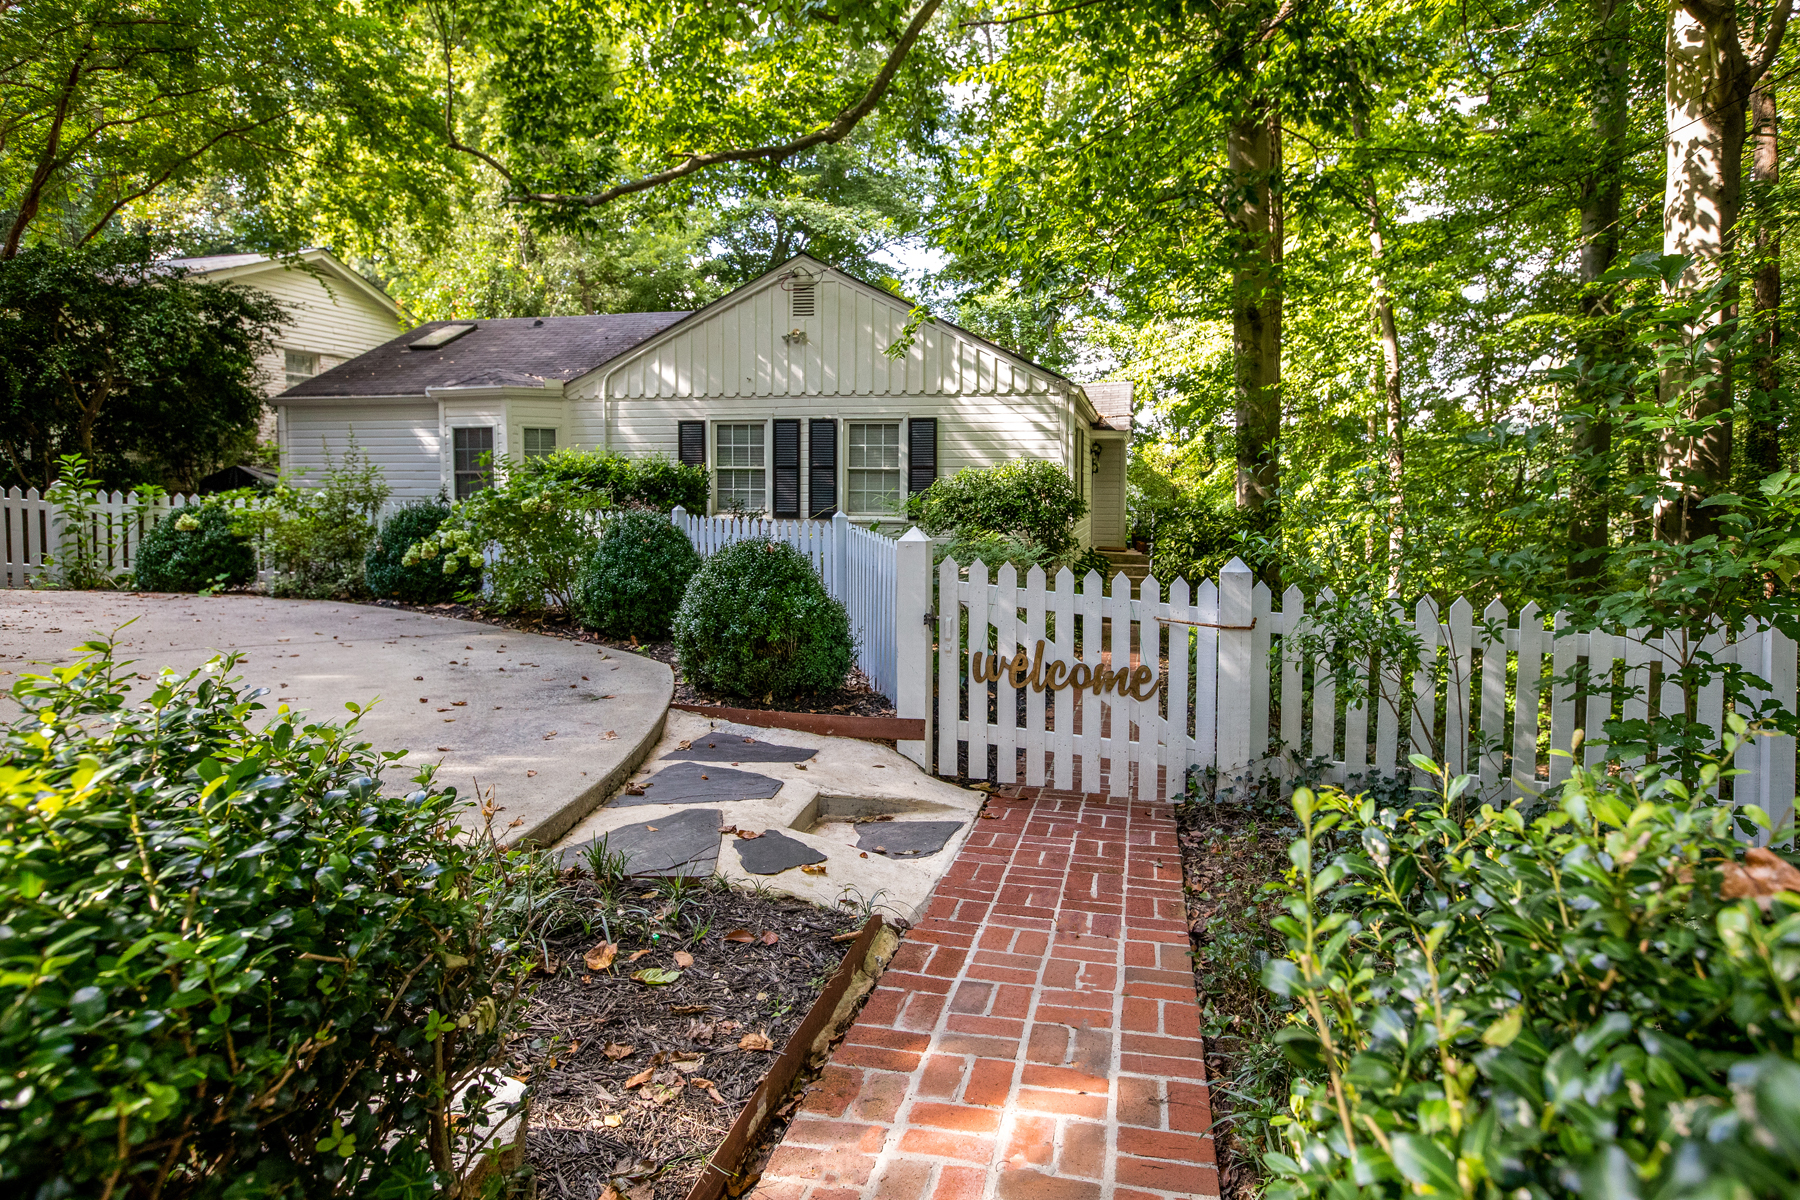 Single Family Home for Sale at Recently Renovated Ranch On The Beltline 535 Overbrook Dr Atlanta, Georgia 30318 United States